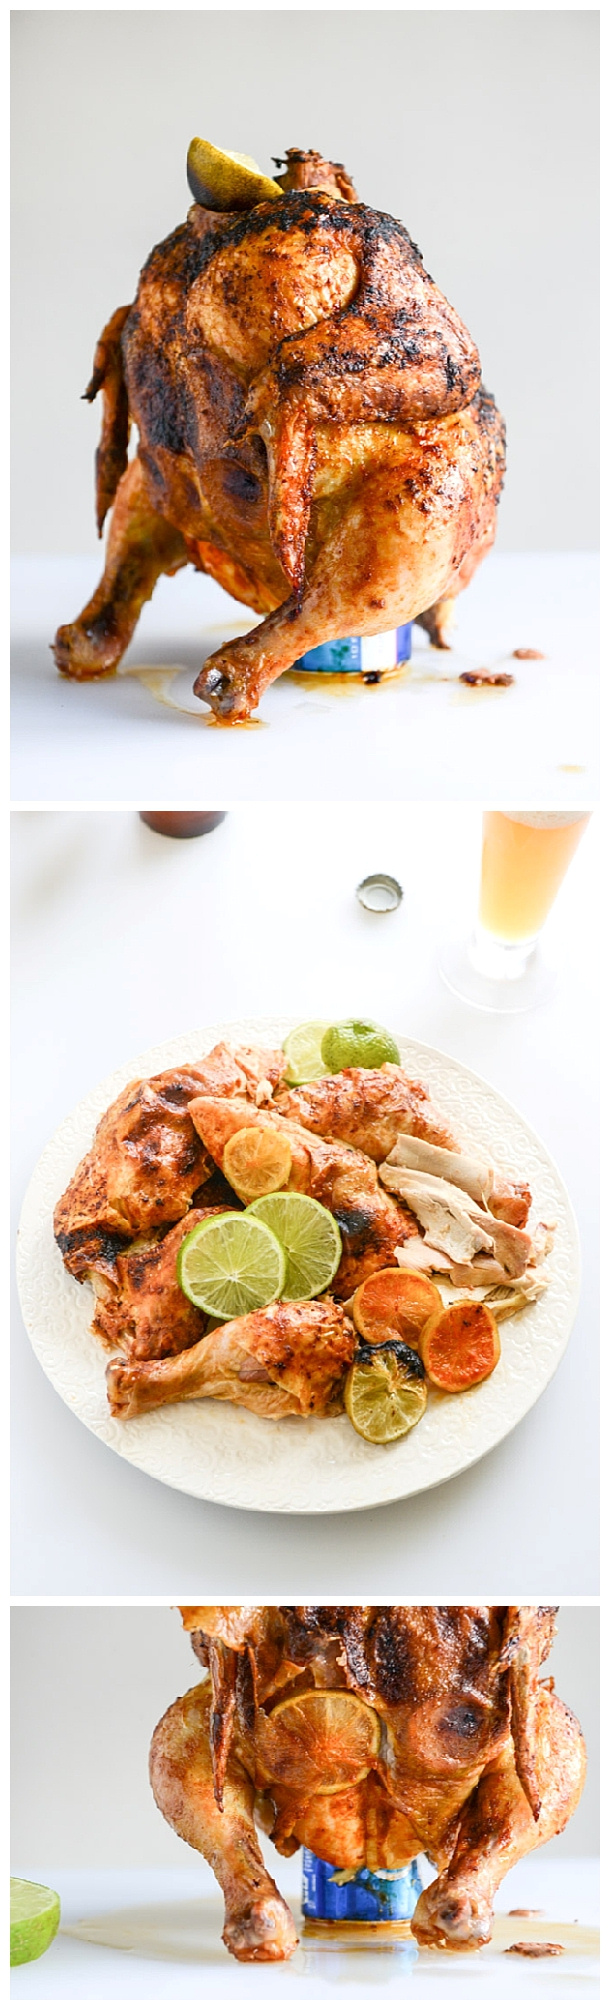 Chicken Recipes - Beer Butt Beer Can Chicken Recipe for the Oven or Grill via How Sweet Eats